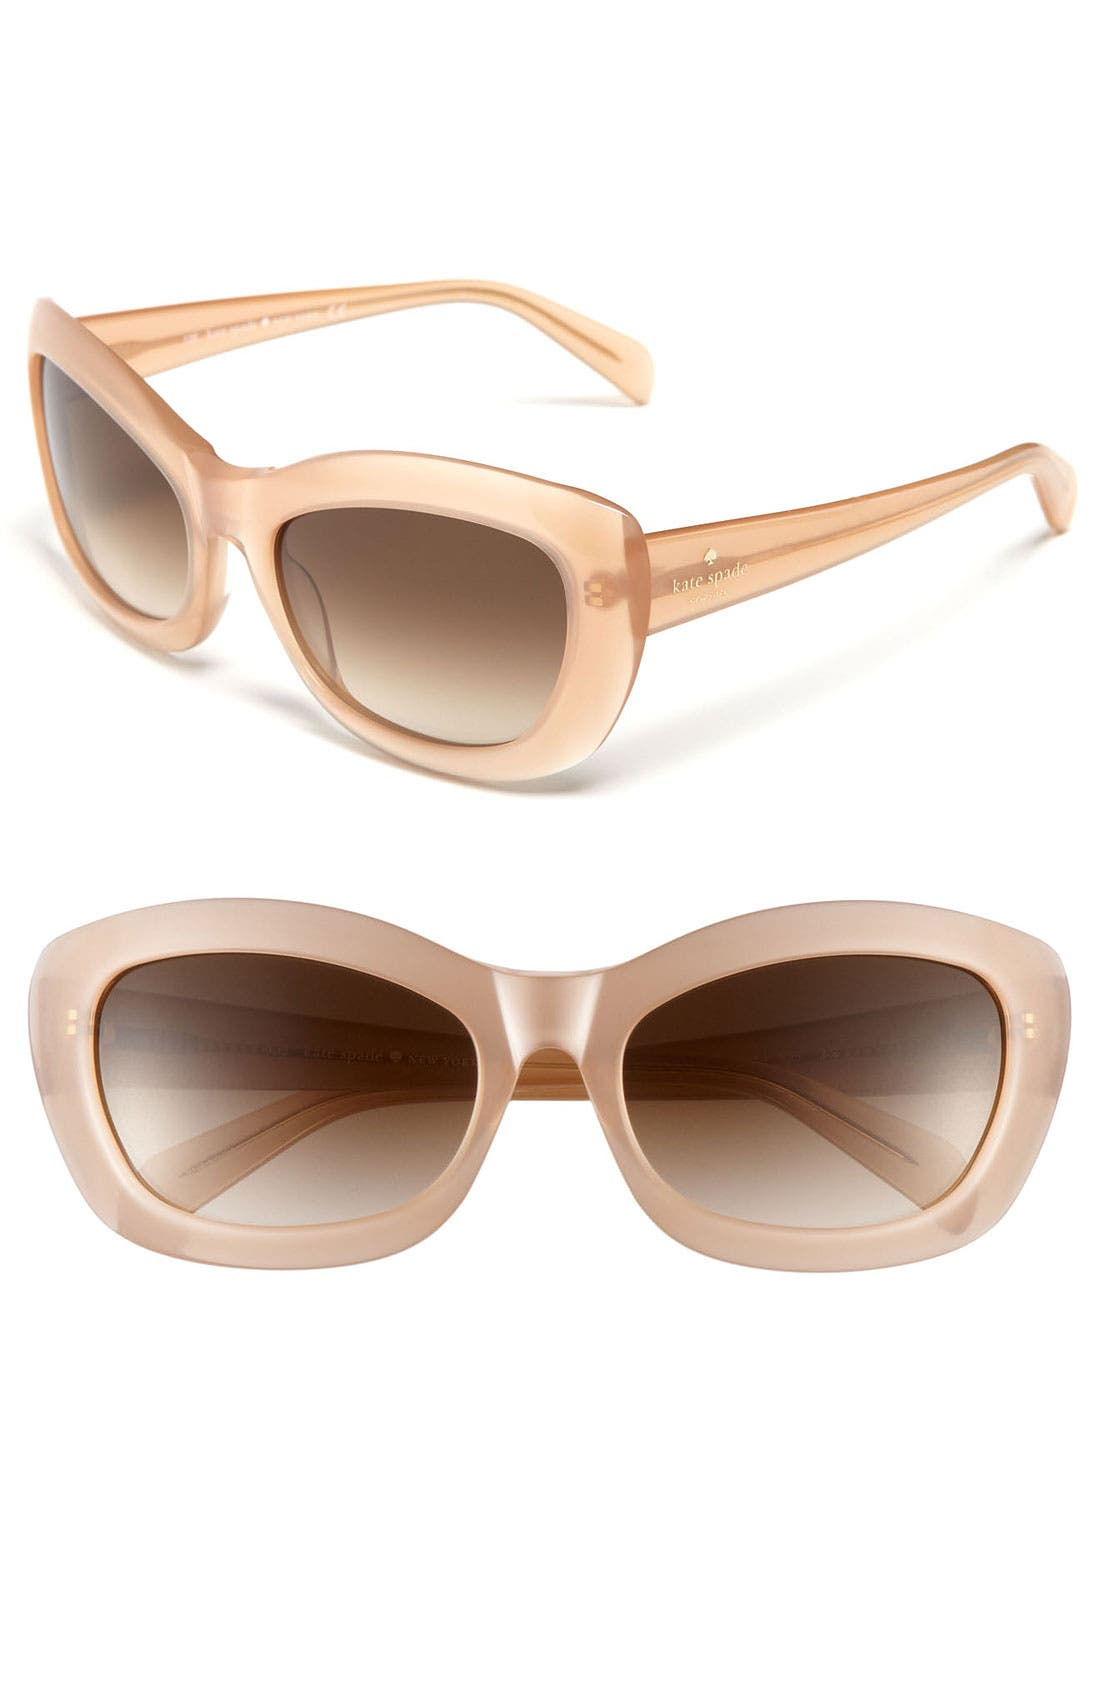 Alternate Image 1 Selected - kate spade new york retro cat's eye 56mm sunglasses